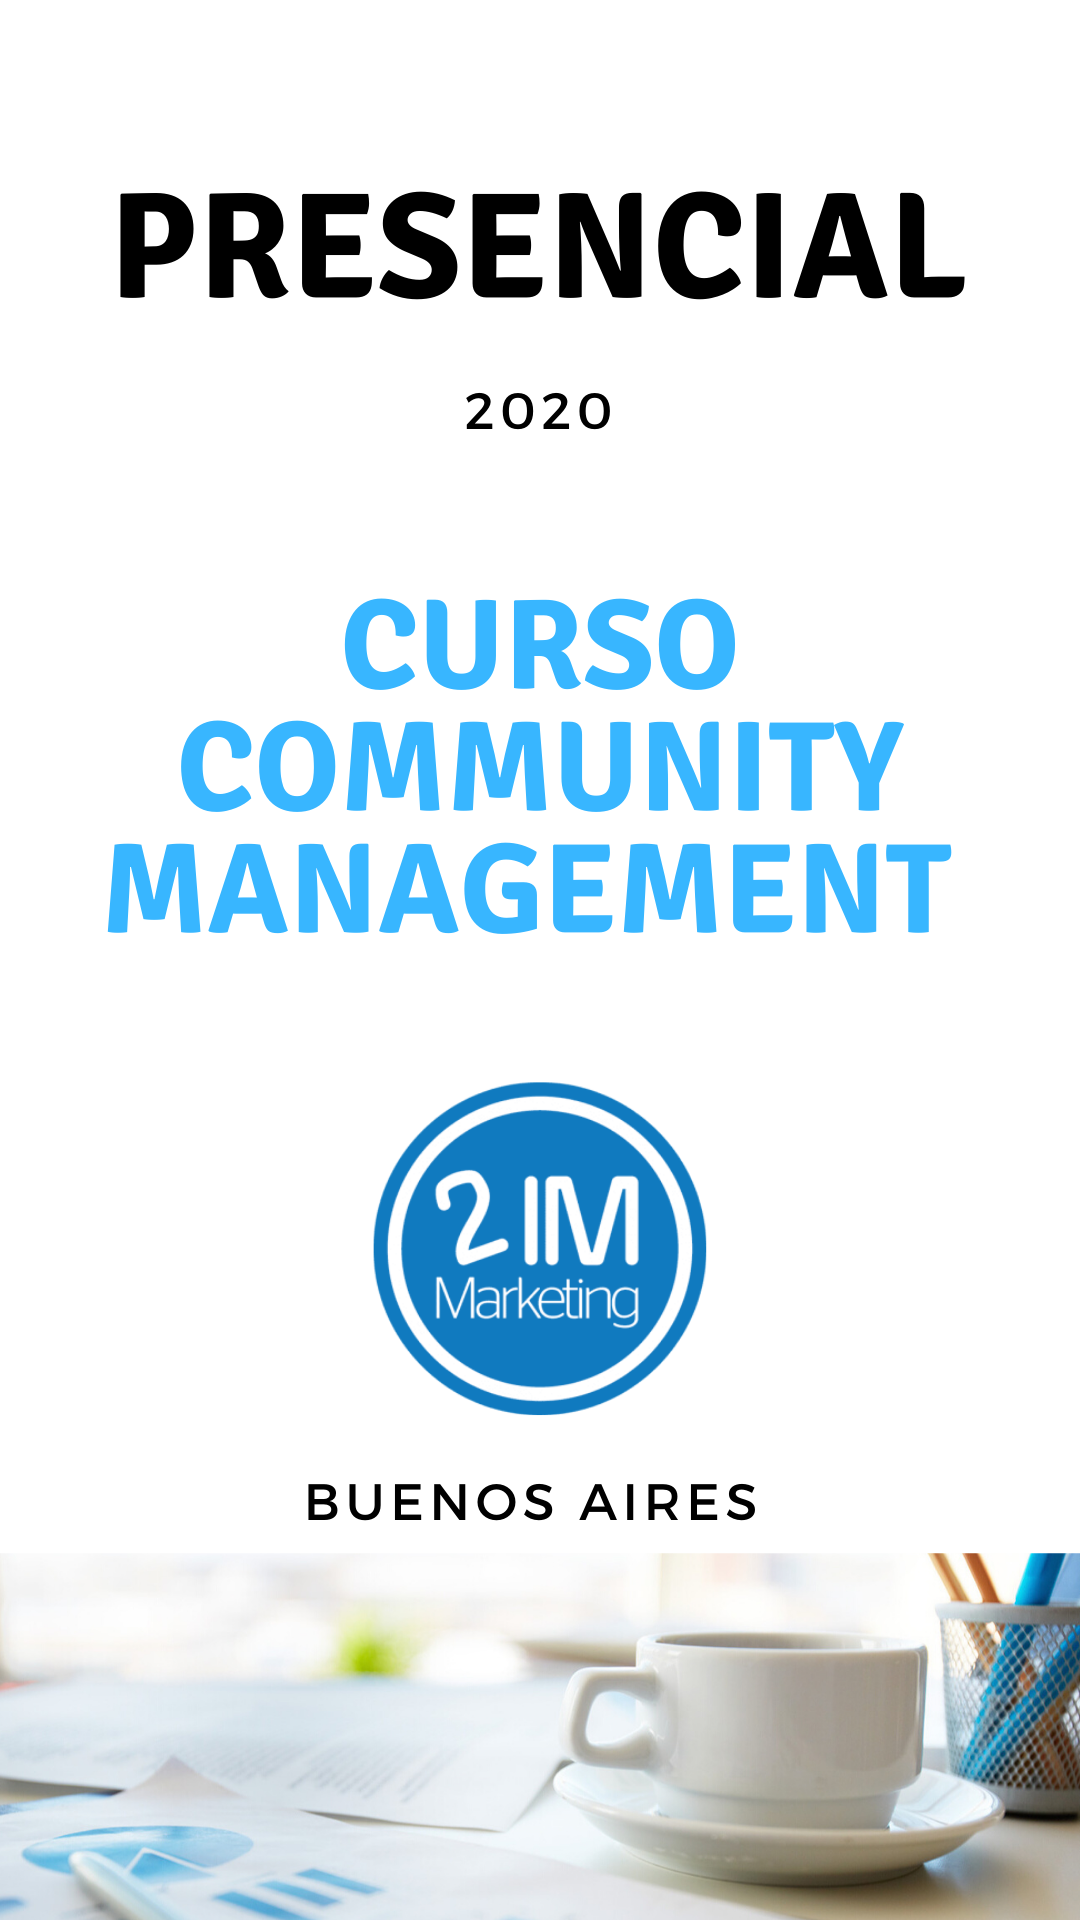 Curso community Manager Buenos Aires 2020